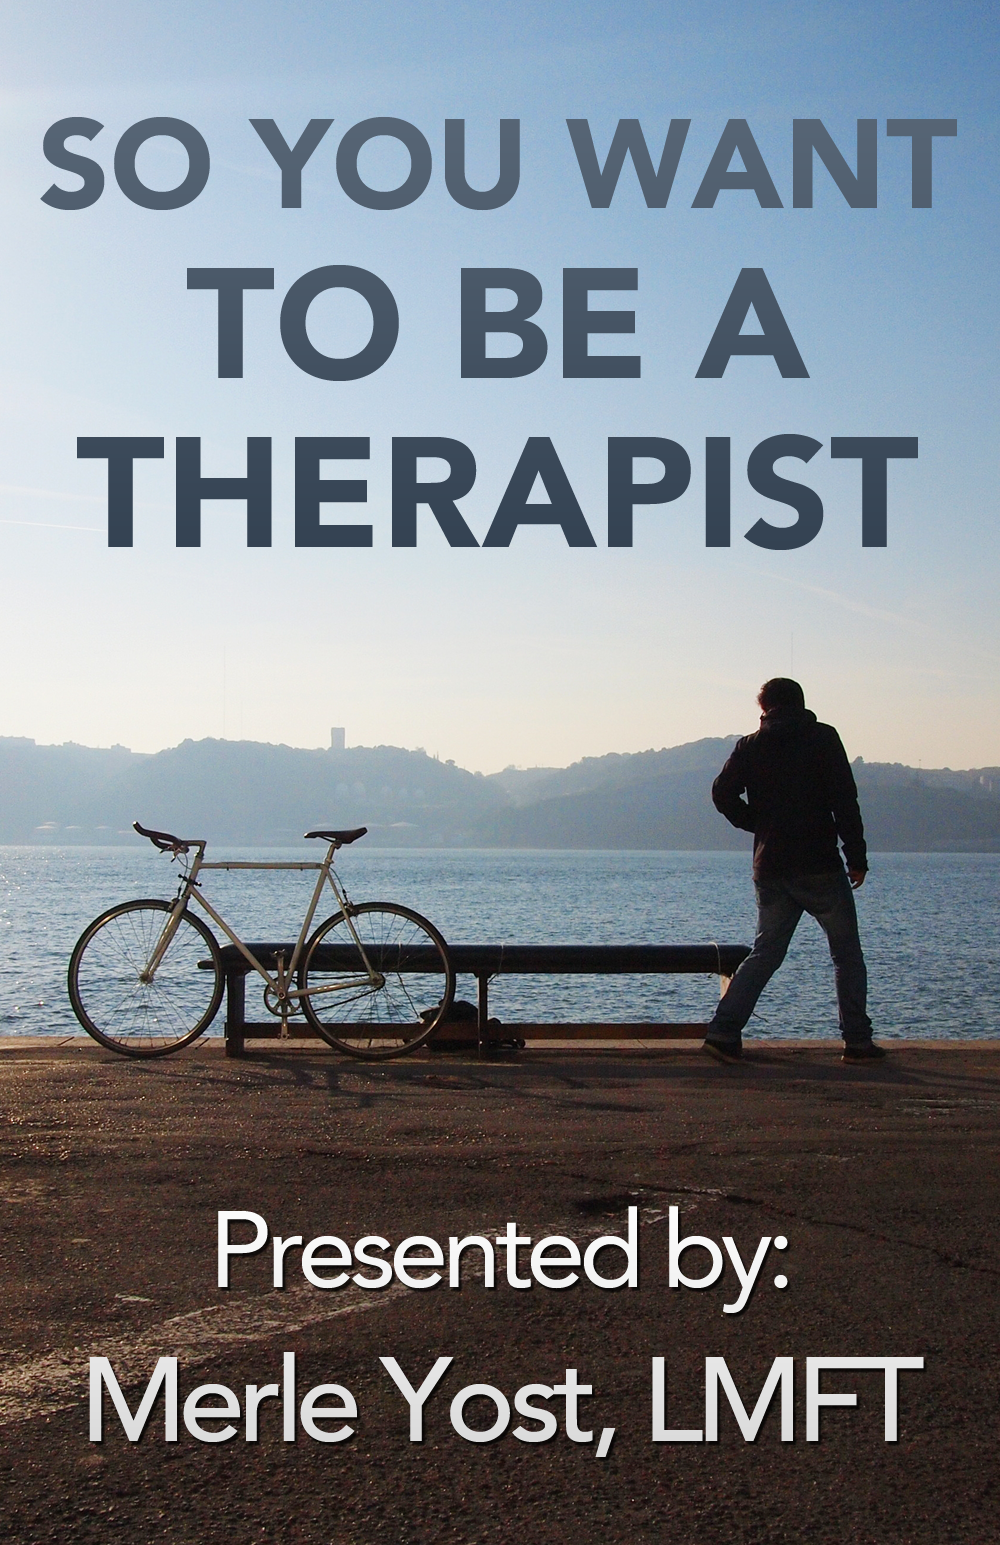 So You Want to be a Therapist Online Workshop Poster